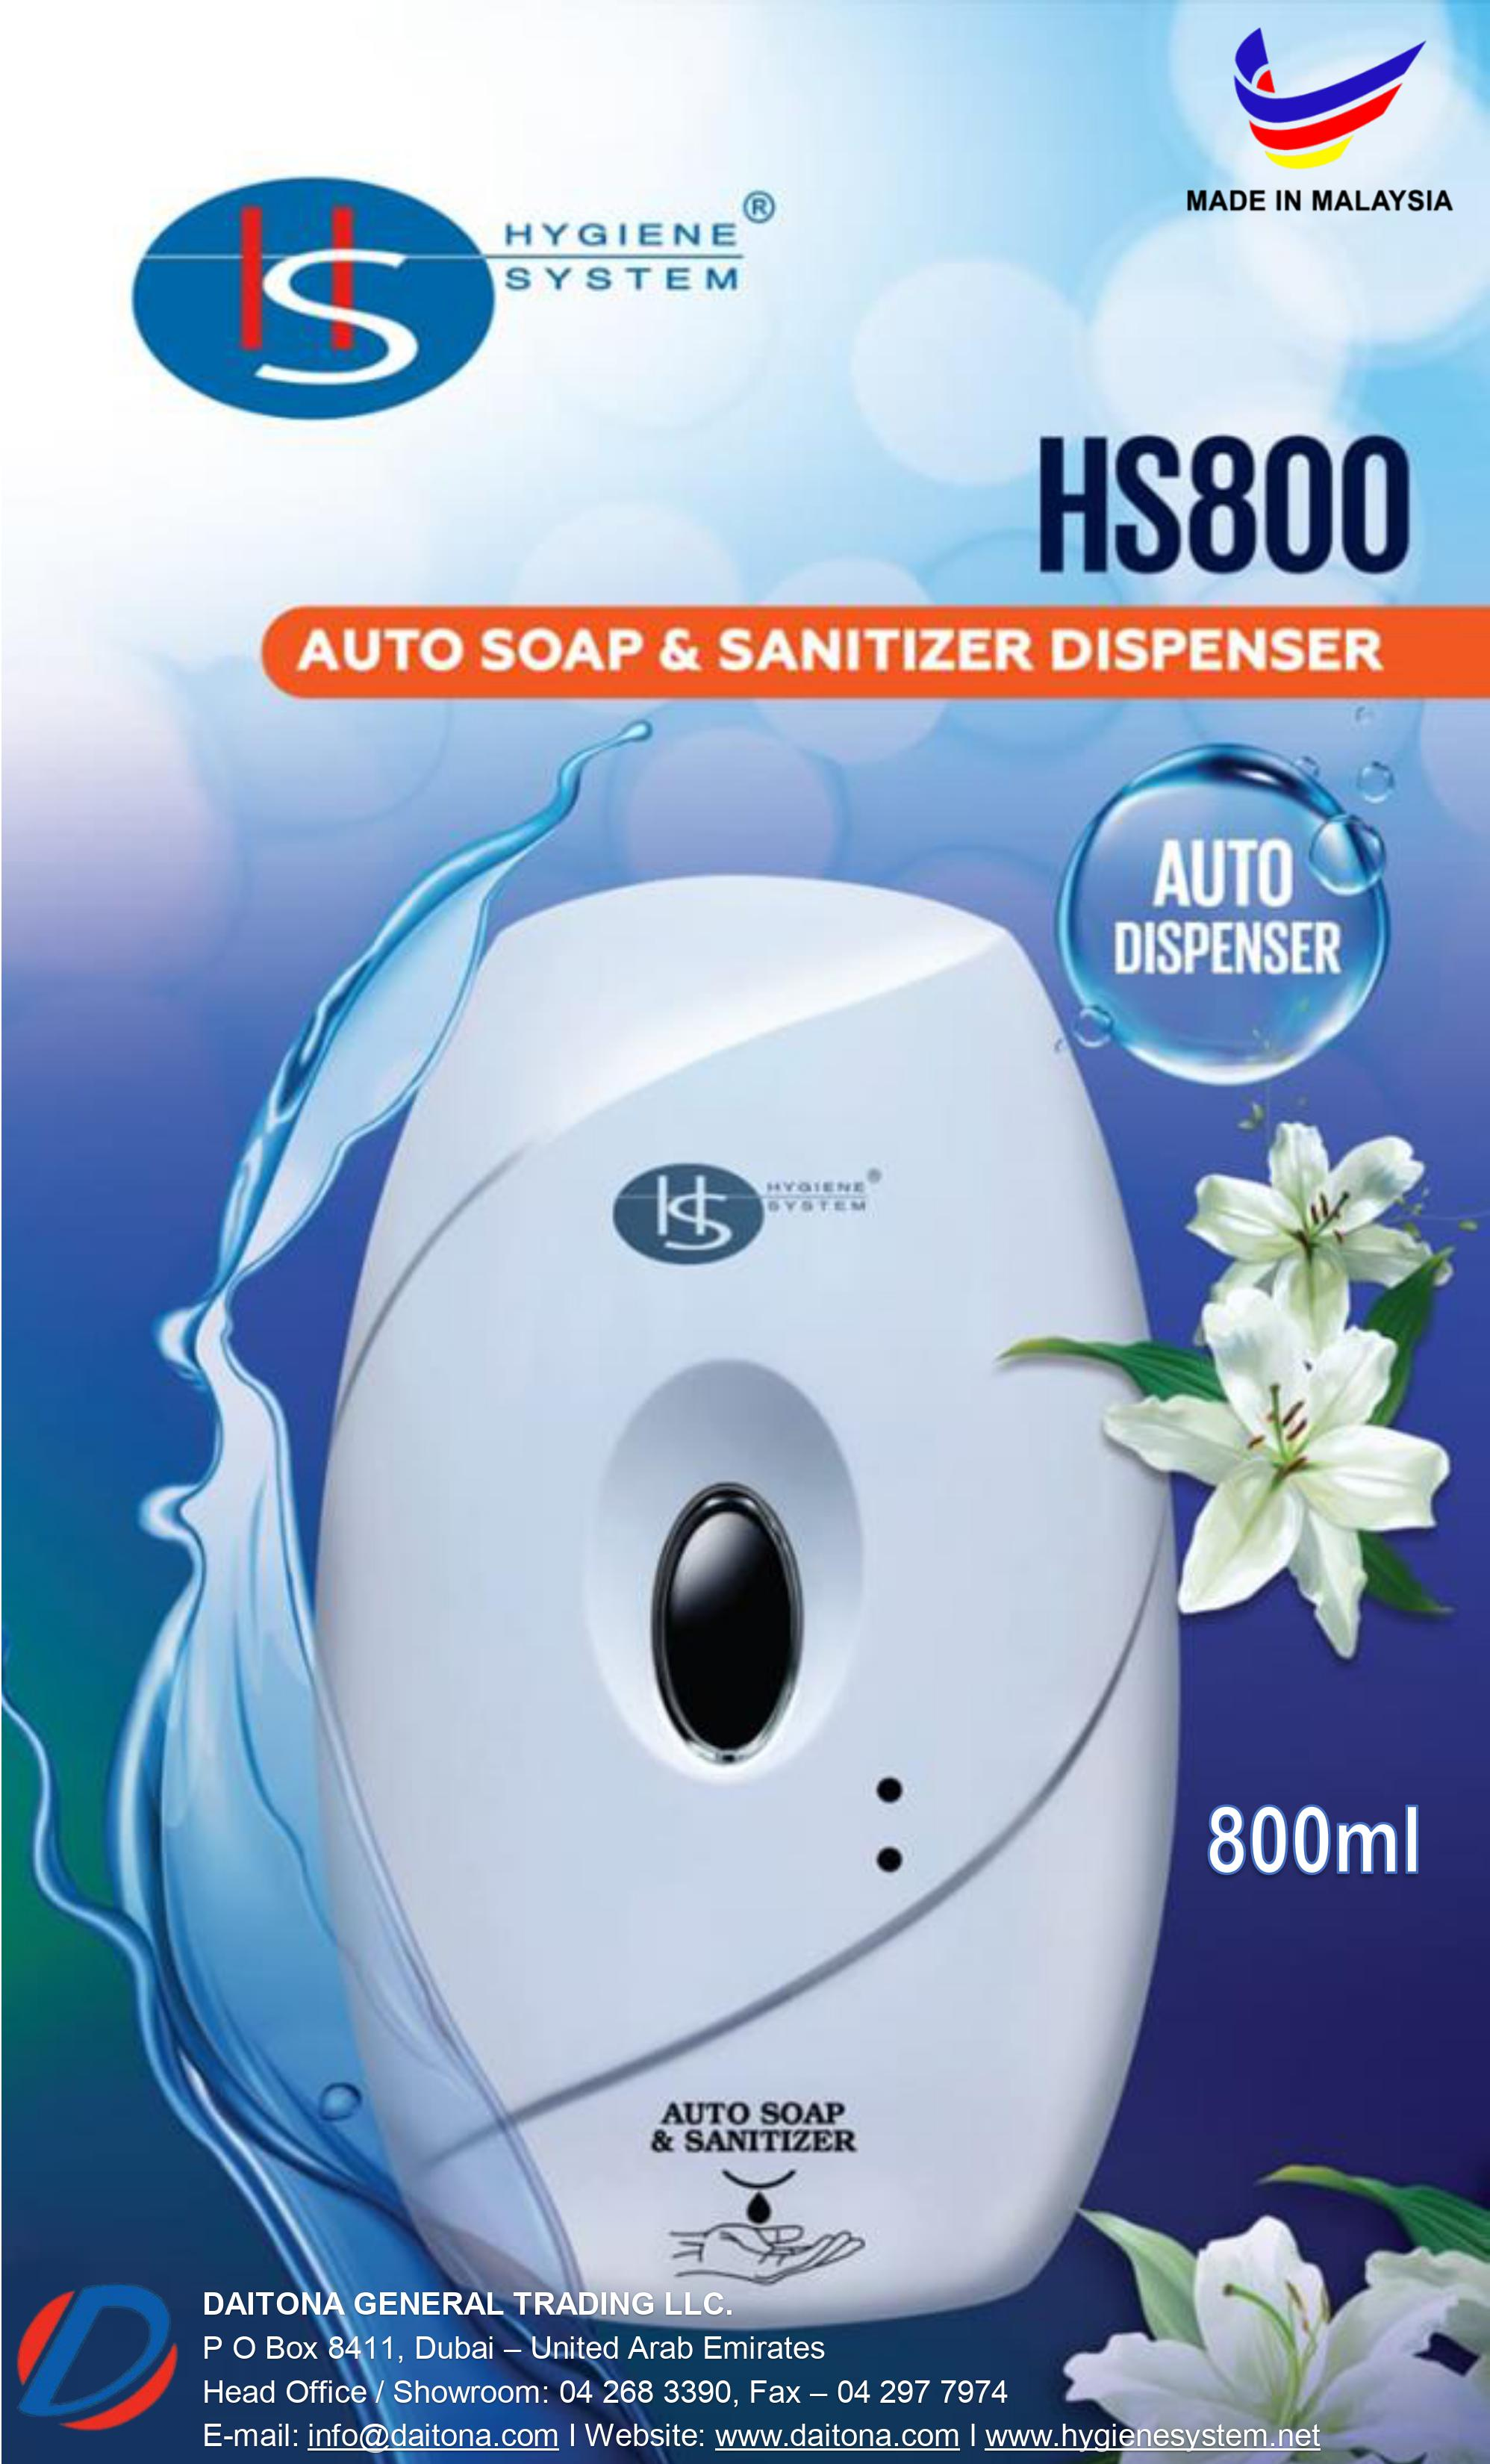 Auto Soap And Hand Sanitizer Dispenser HS800